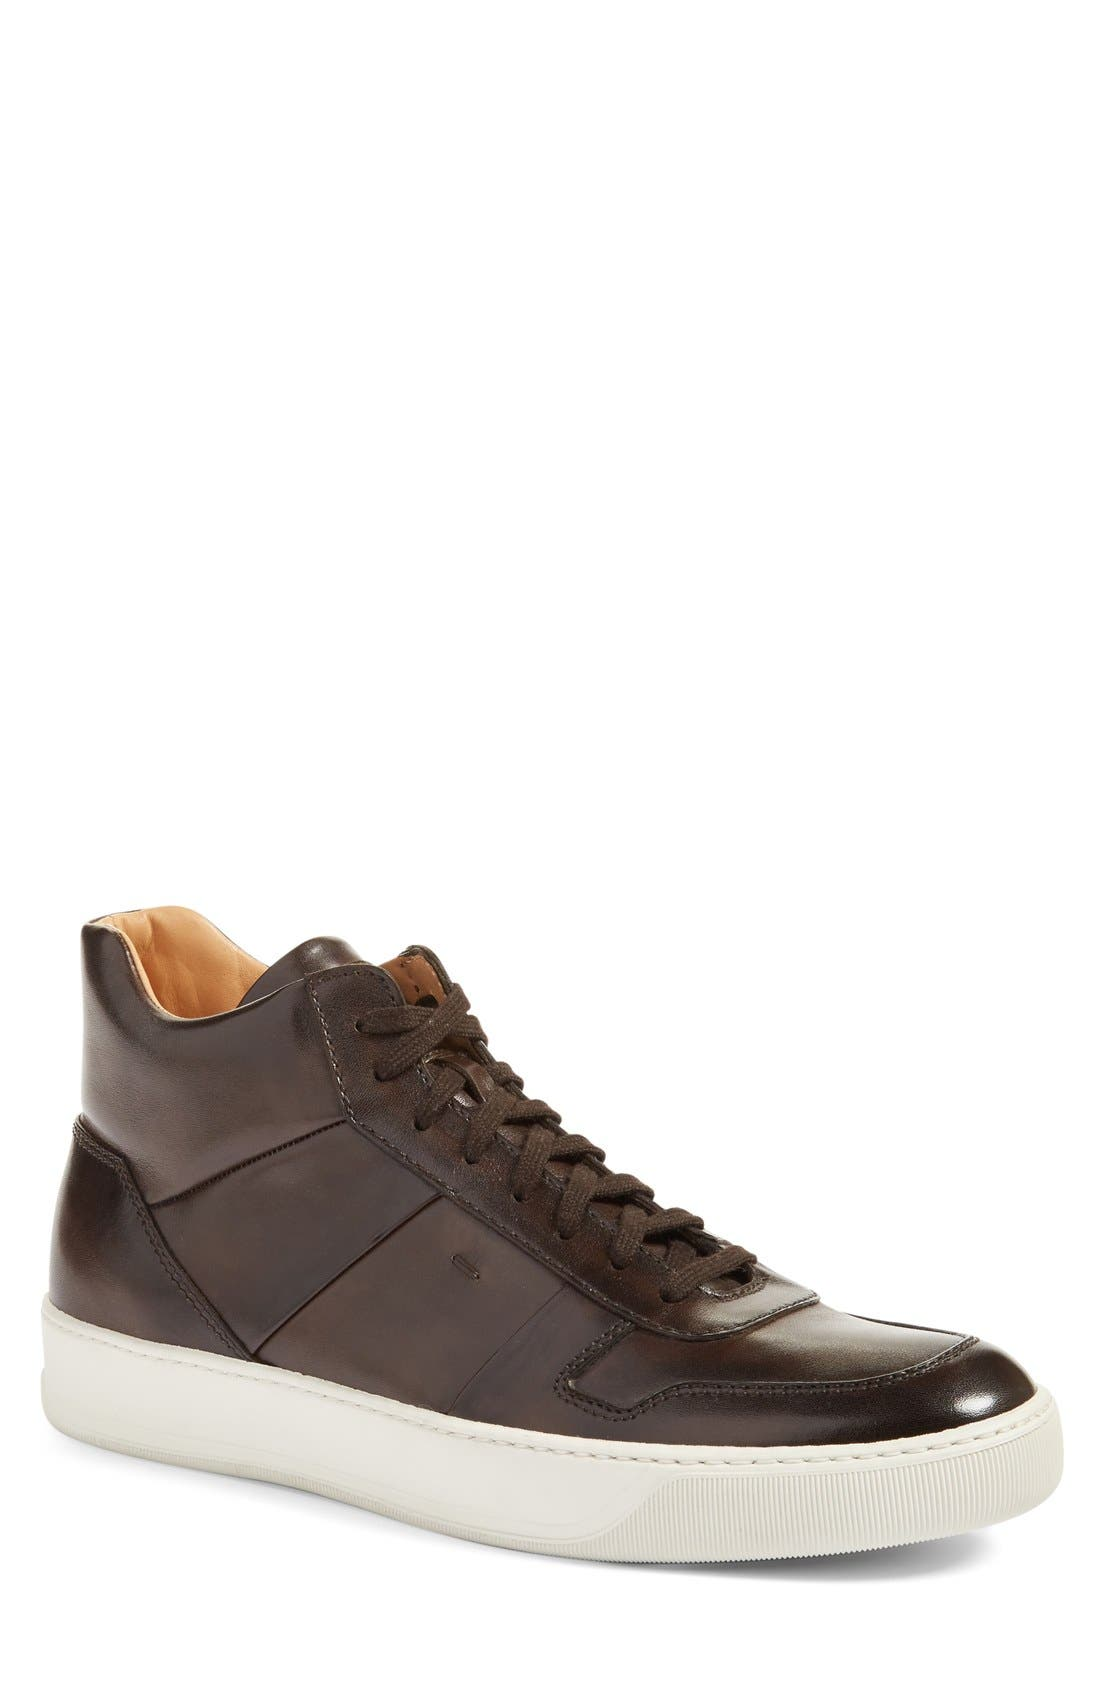 SANTONI 'Ash' High Top Sneaker